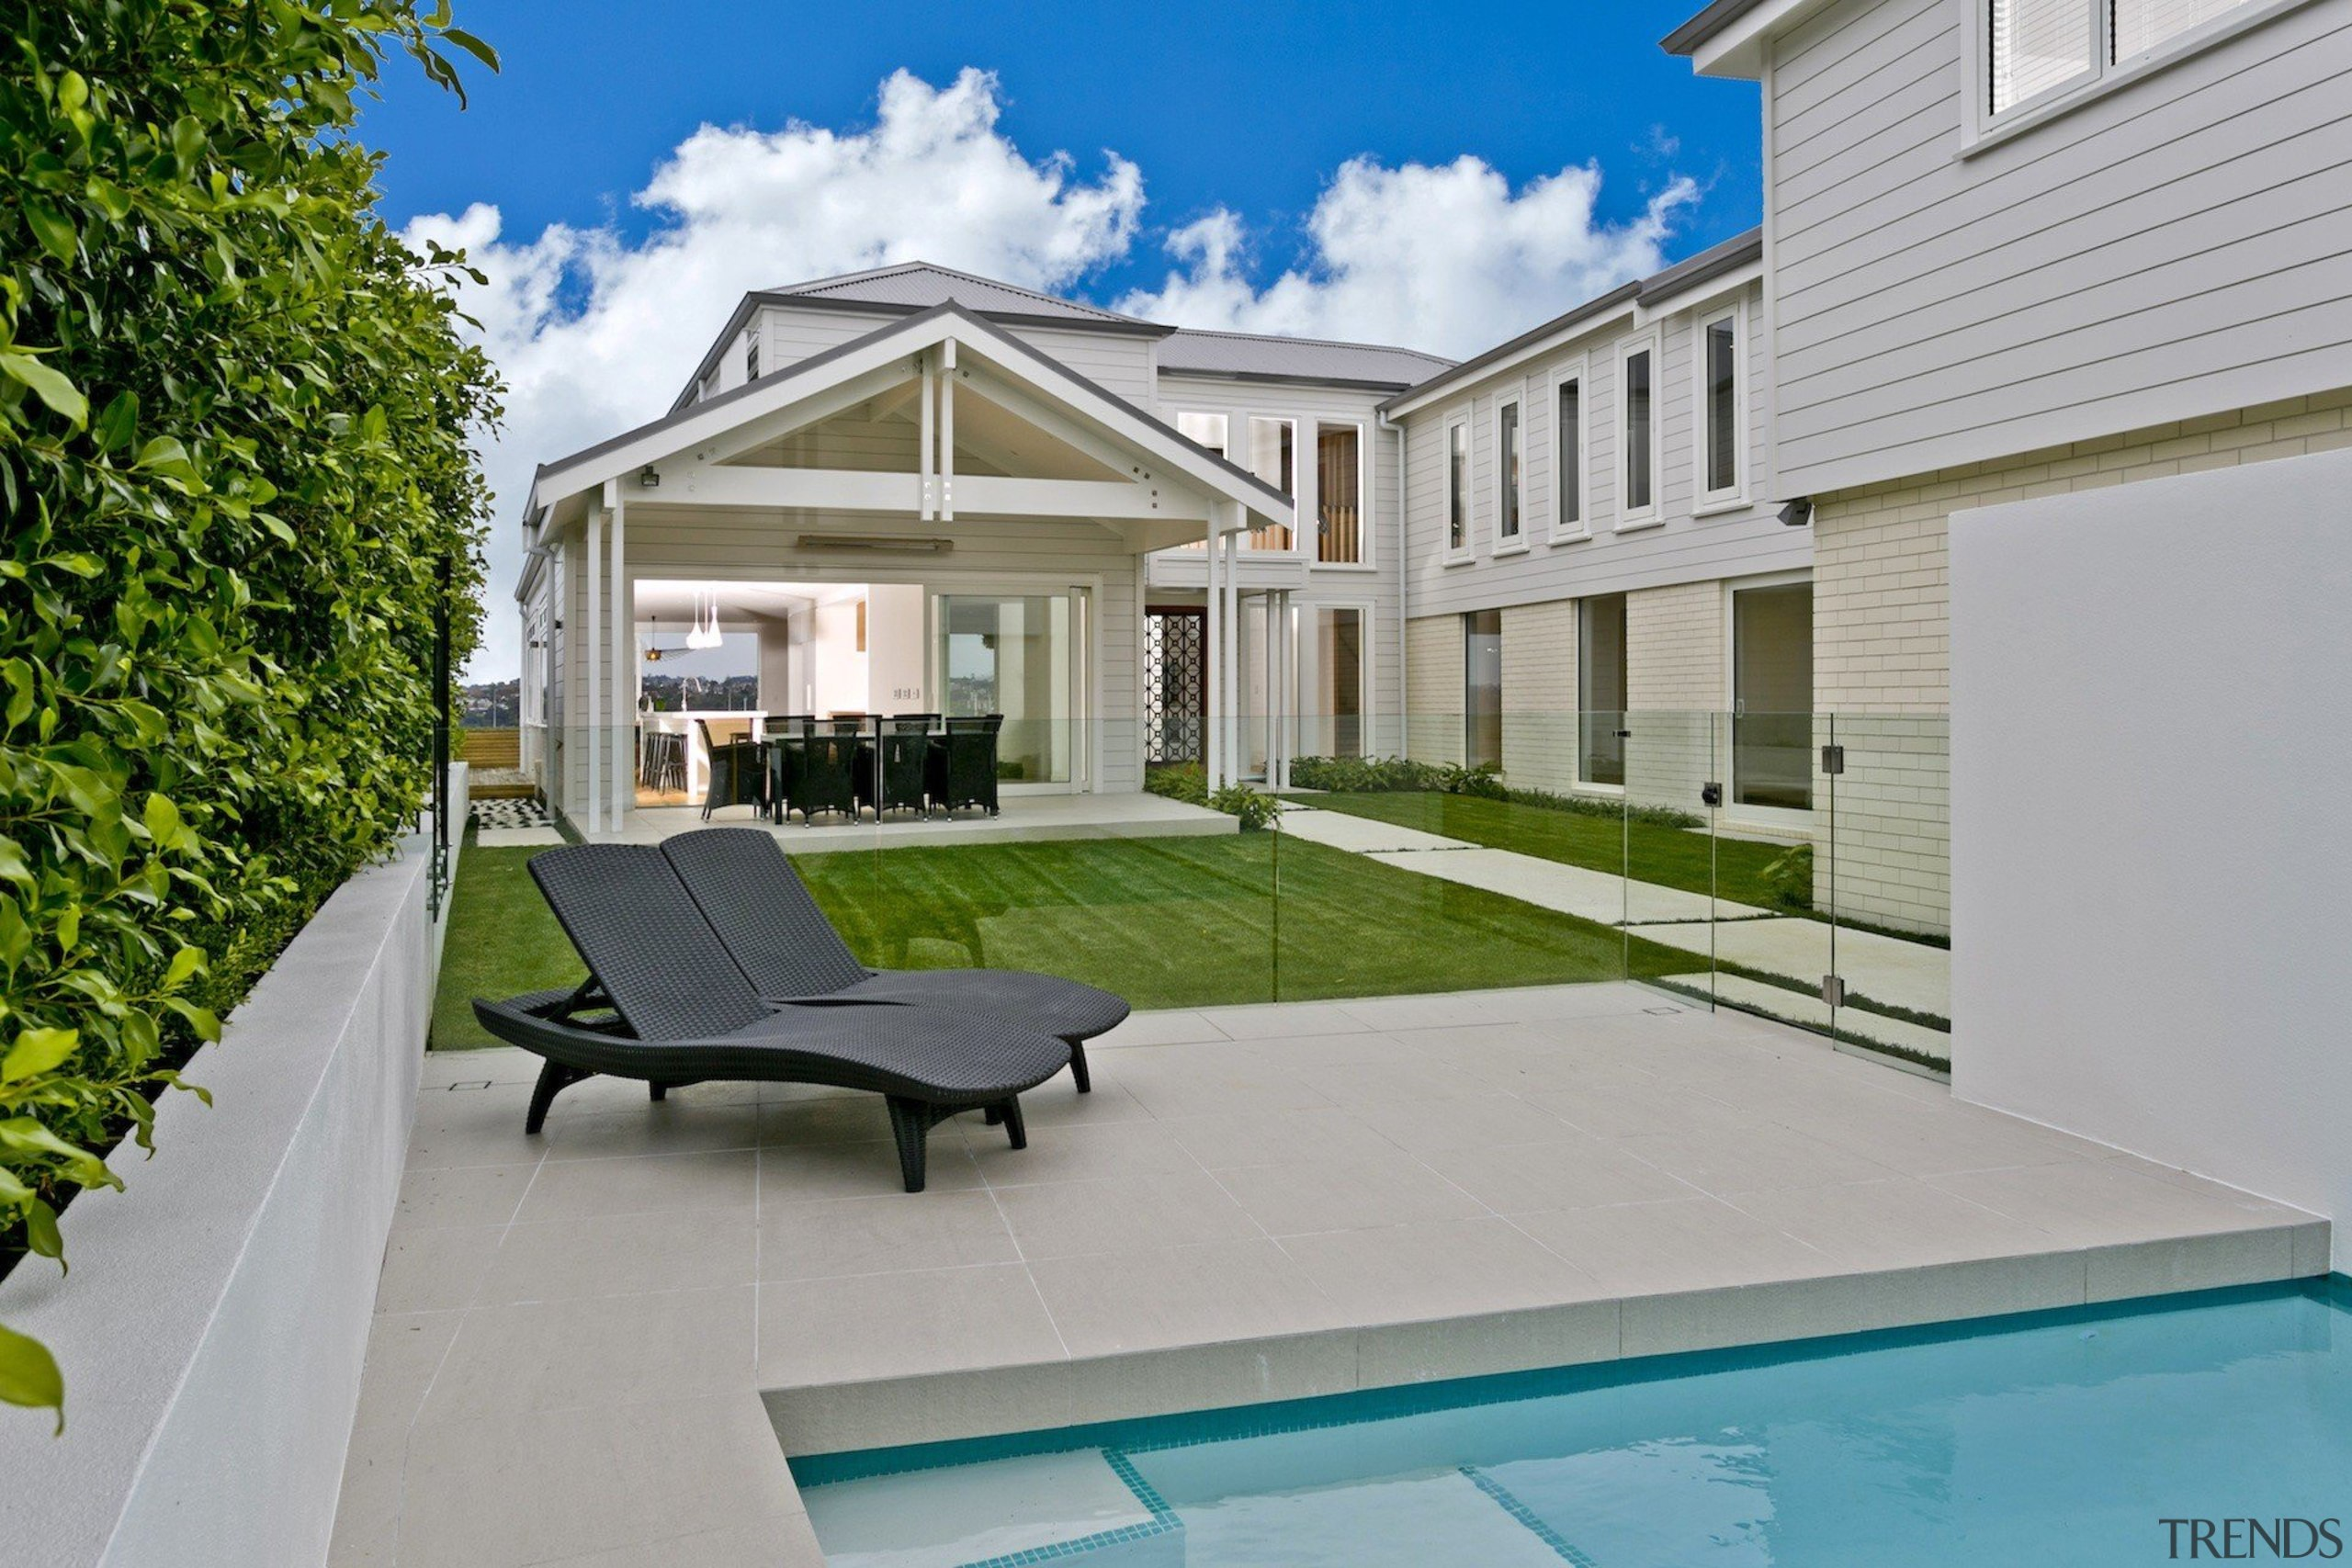 QPC Build Group backyard, estate, home, house, property, real estate, residential area, roof, villa, window, gray